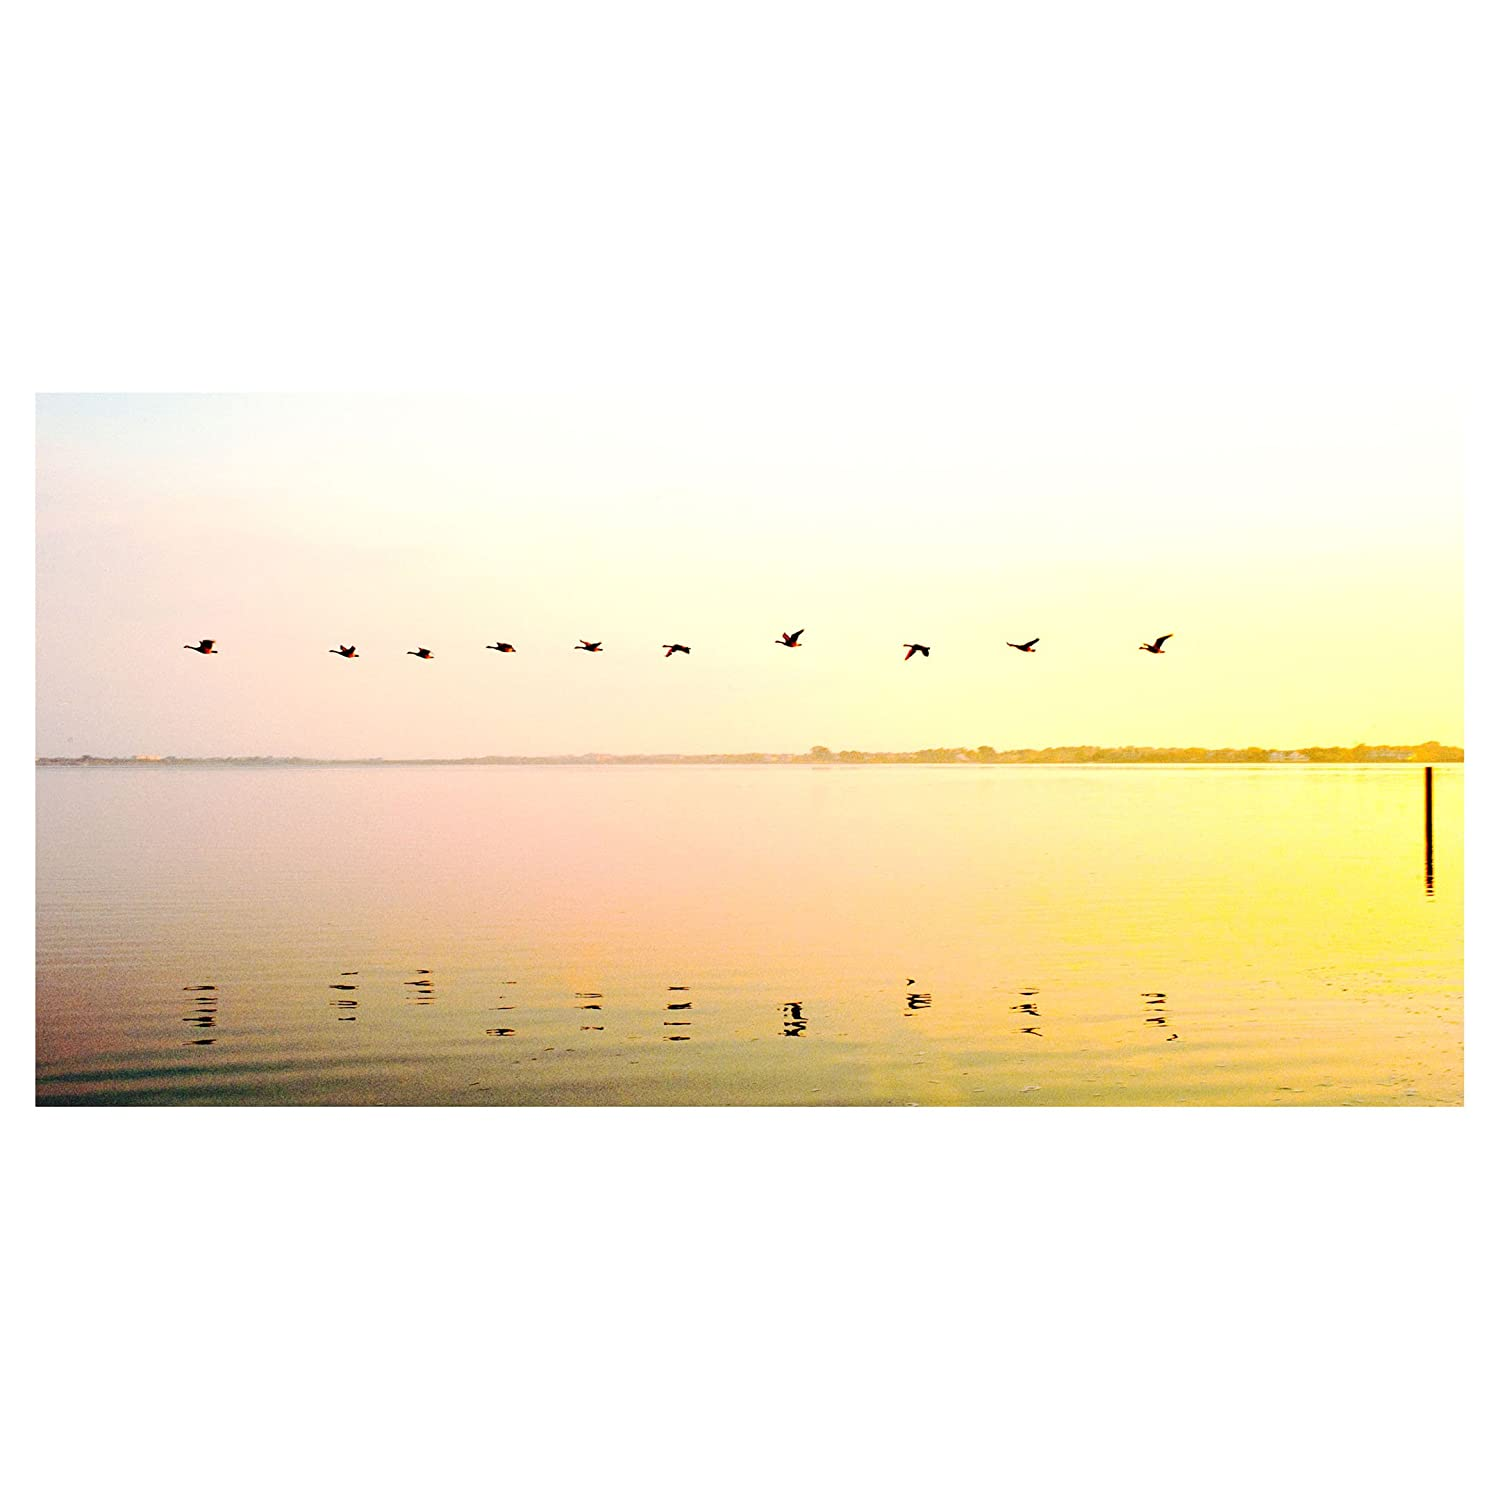 Amazon.com: eFrame Fine Art | Flying Geese by Andy Marcus 15"|1500|1500|?|en|2|c06d4532175b2813794a6ae585be0bdb|False|UNLIKELY|0.28998997807502747